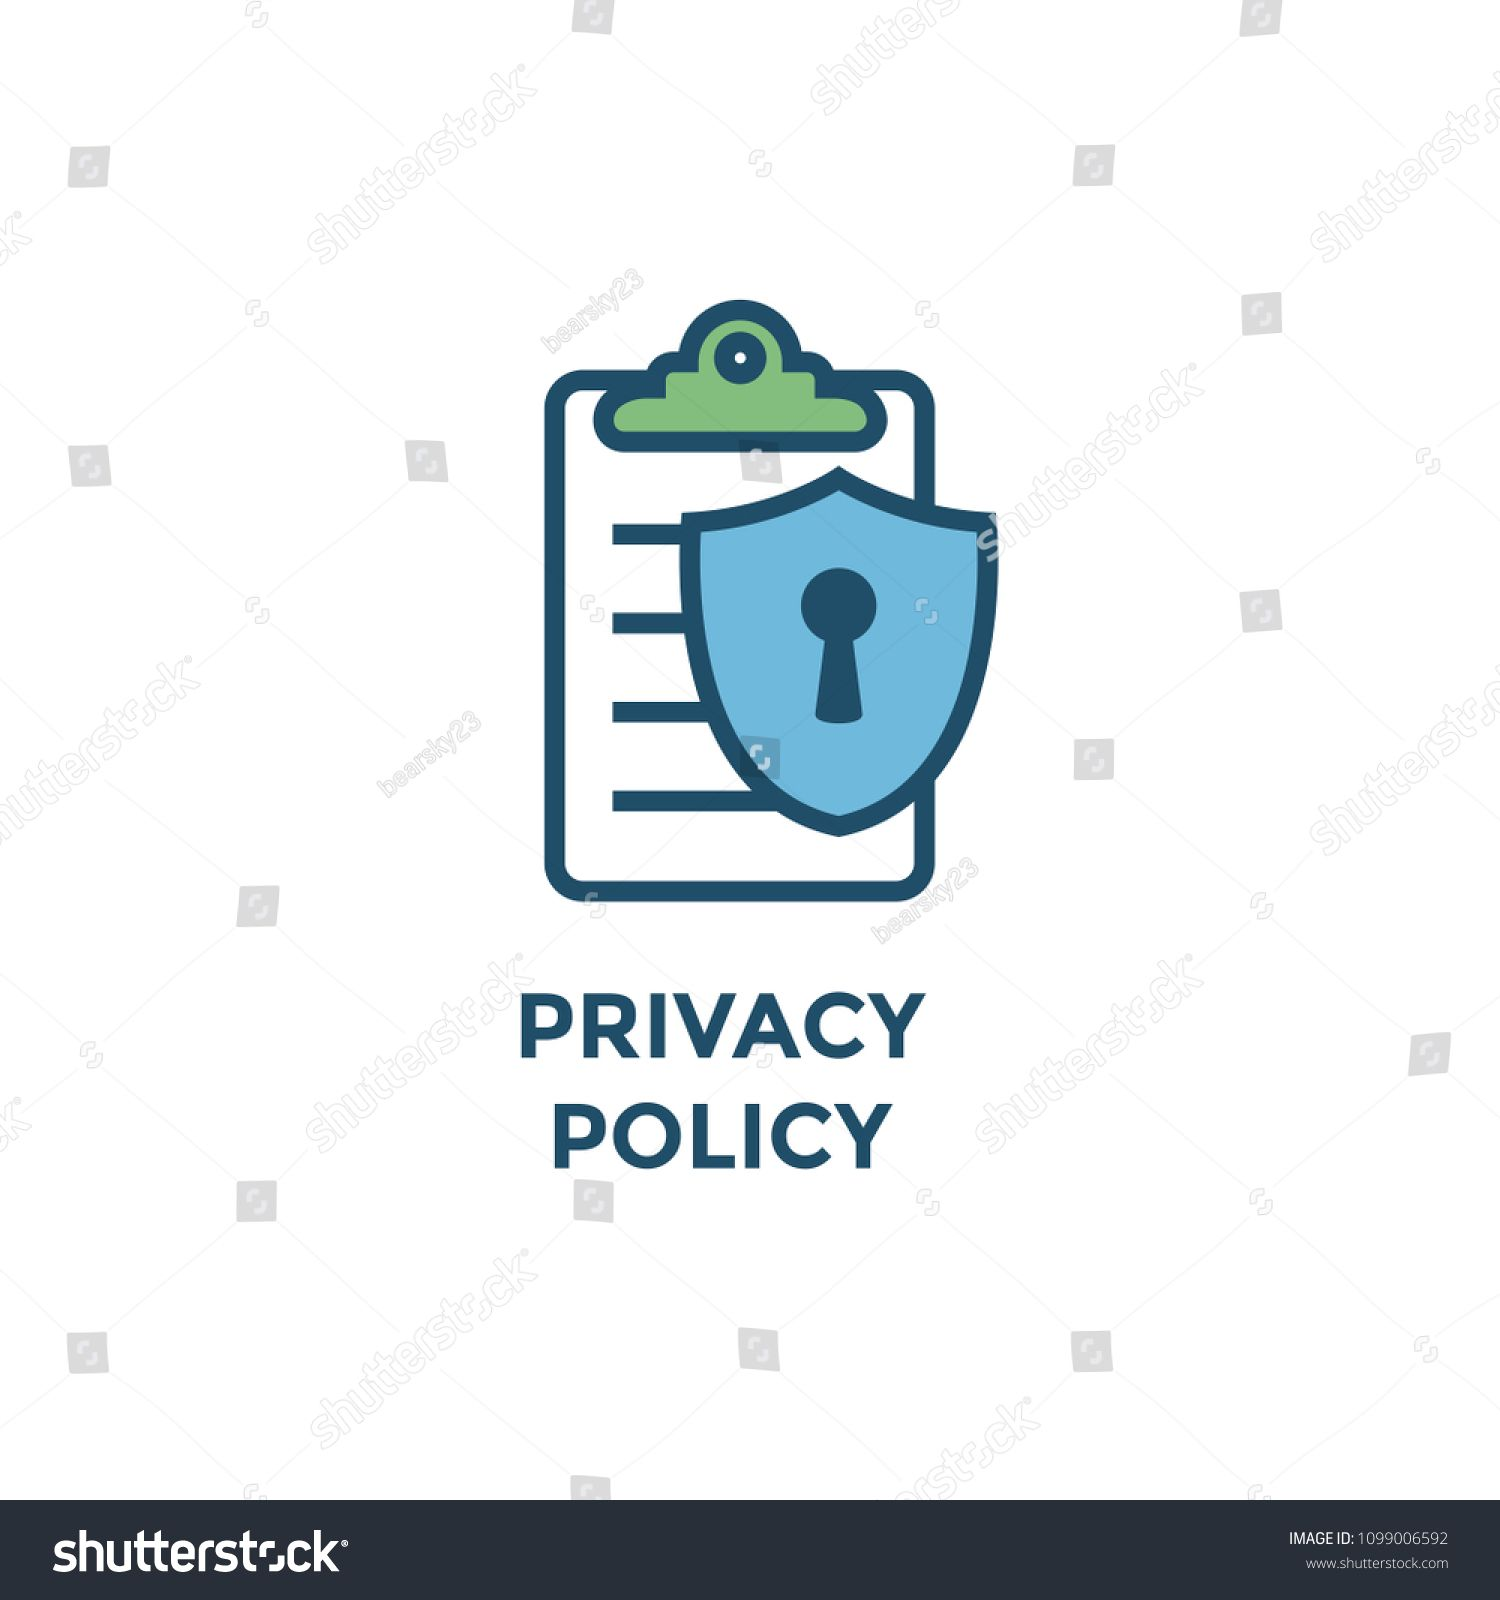 Privacy Policy Graphic Used For Web Page W Icon Symbol Sponsored Sponsored Graphic Policy Privacy Web In 2020 Graphic Privacy Policy Graphic Art